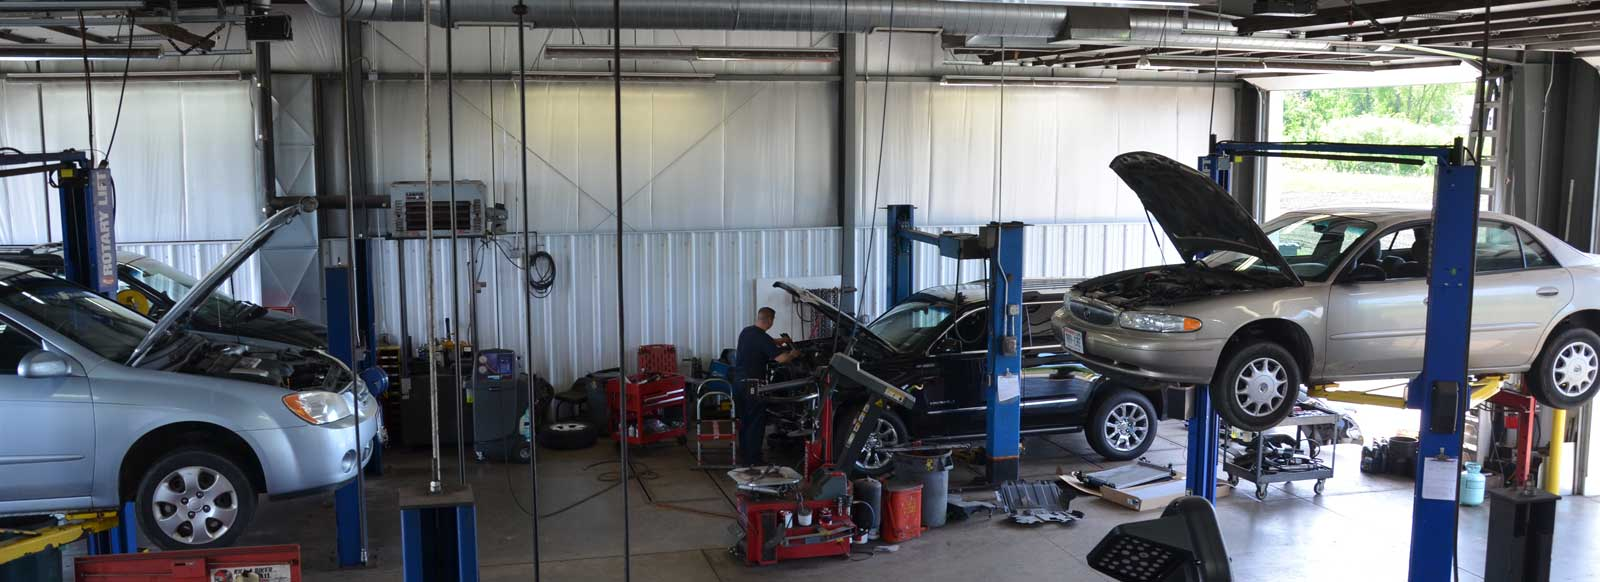 AFS Service Auto Repair Shop - Inside